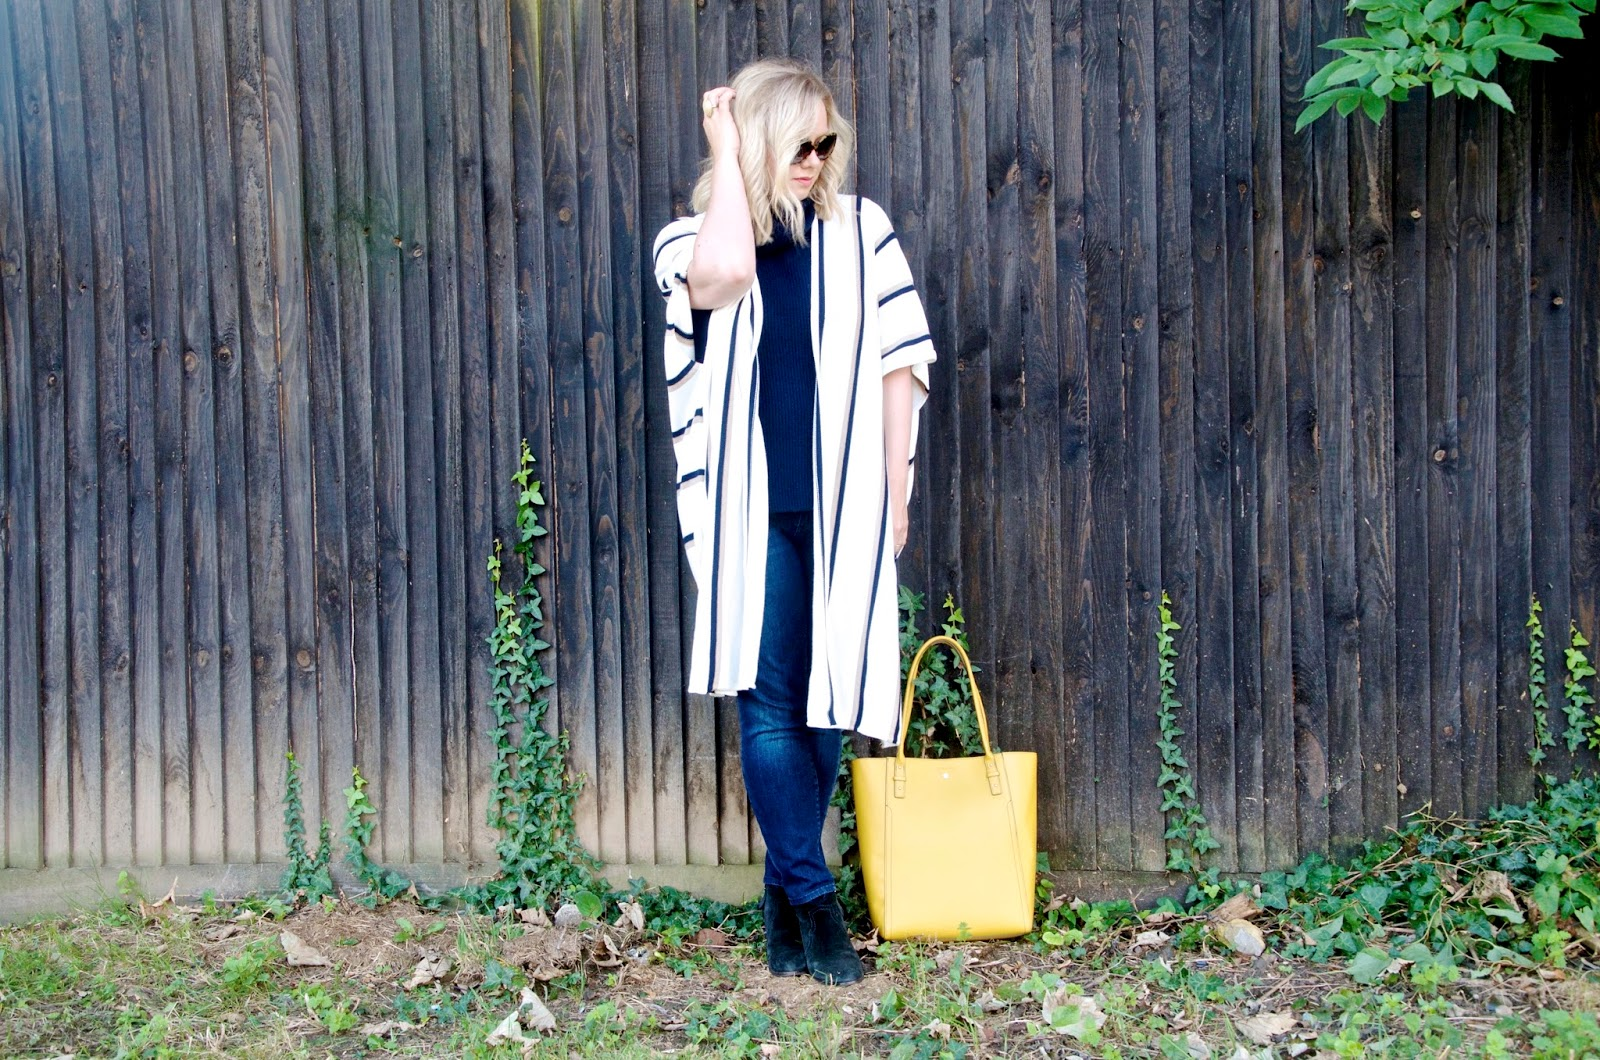 Sleeveless Turtleneck sweater with striped long cardigan